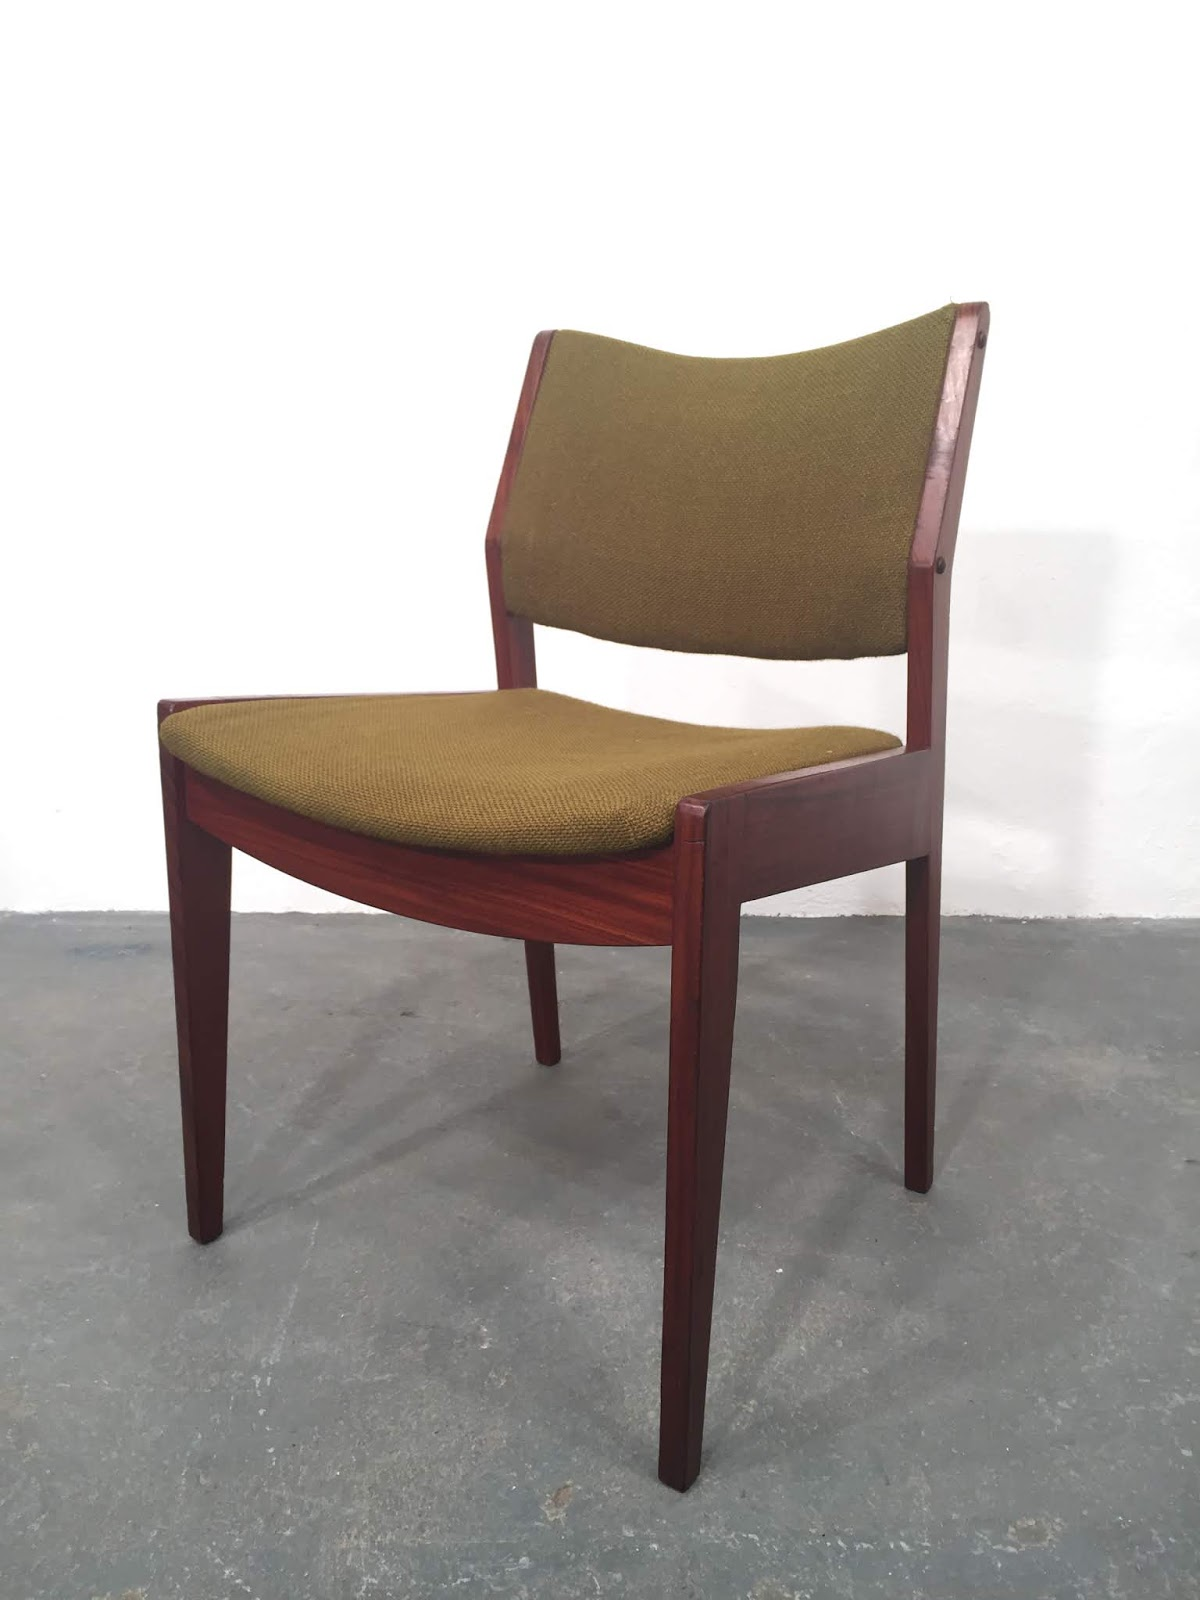 Retro Dining Chairs Ireland Counter Height Table And Canada Vintage Furniture Ocd